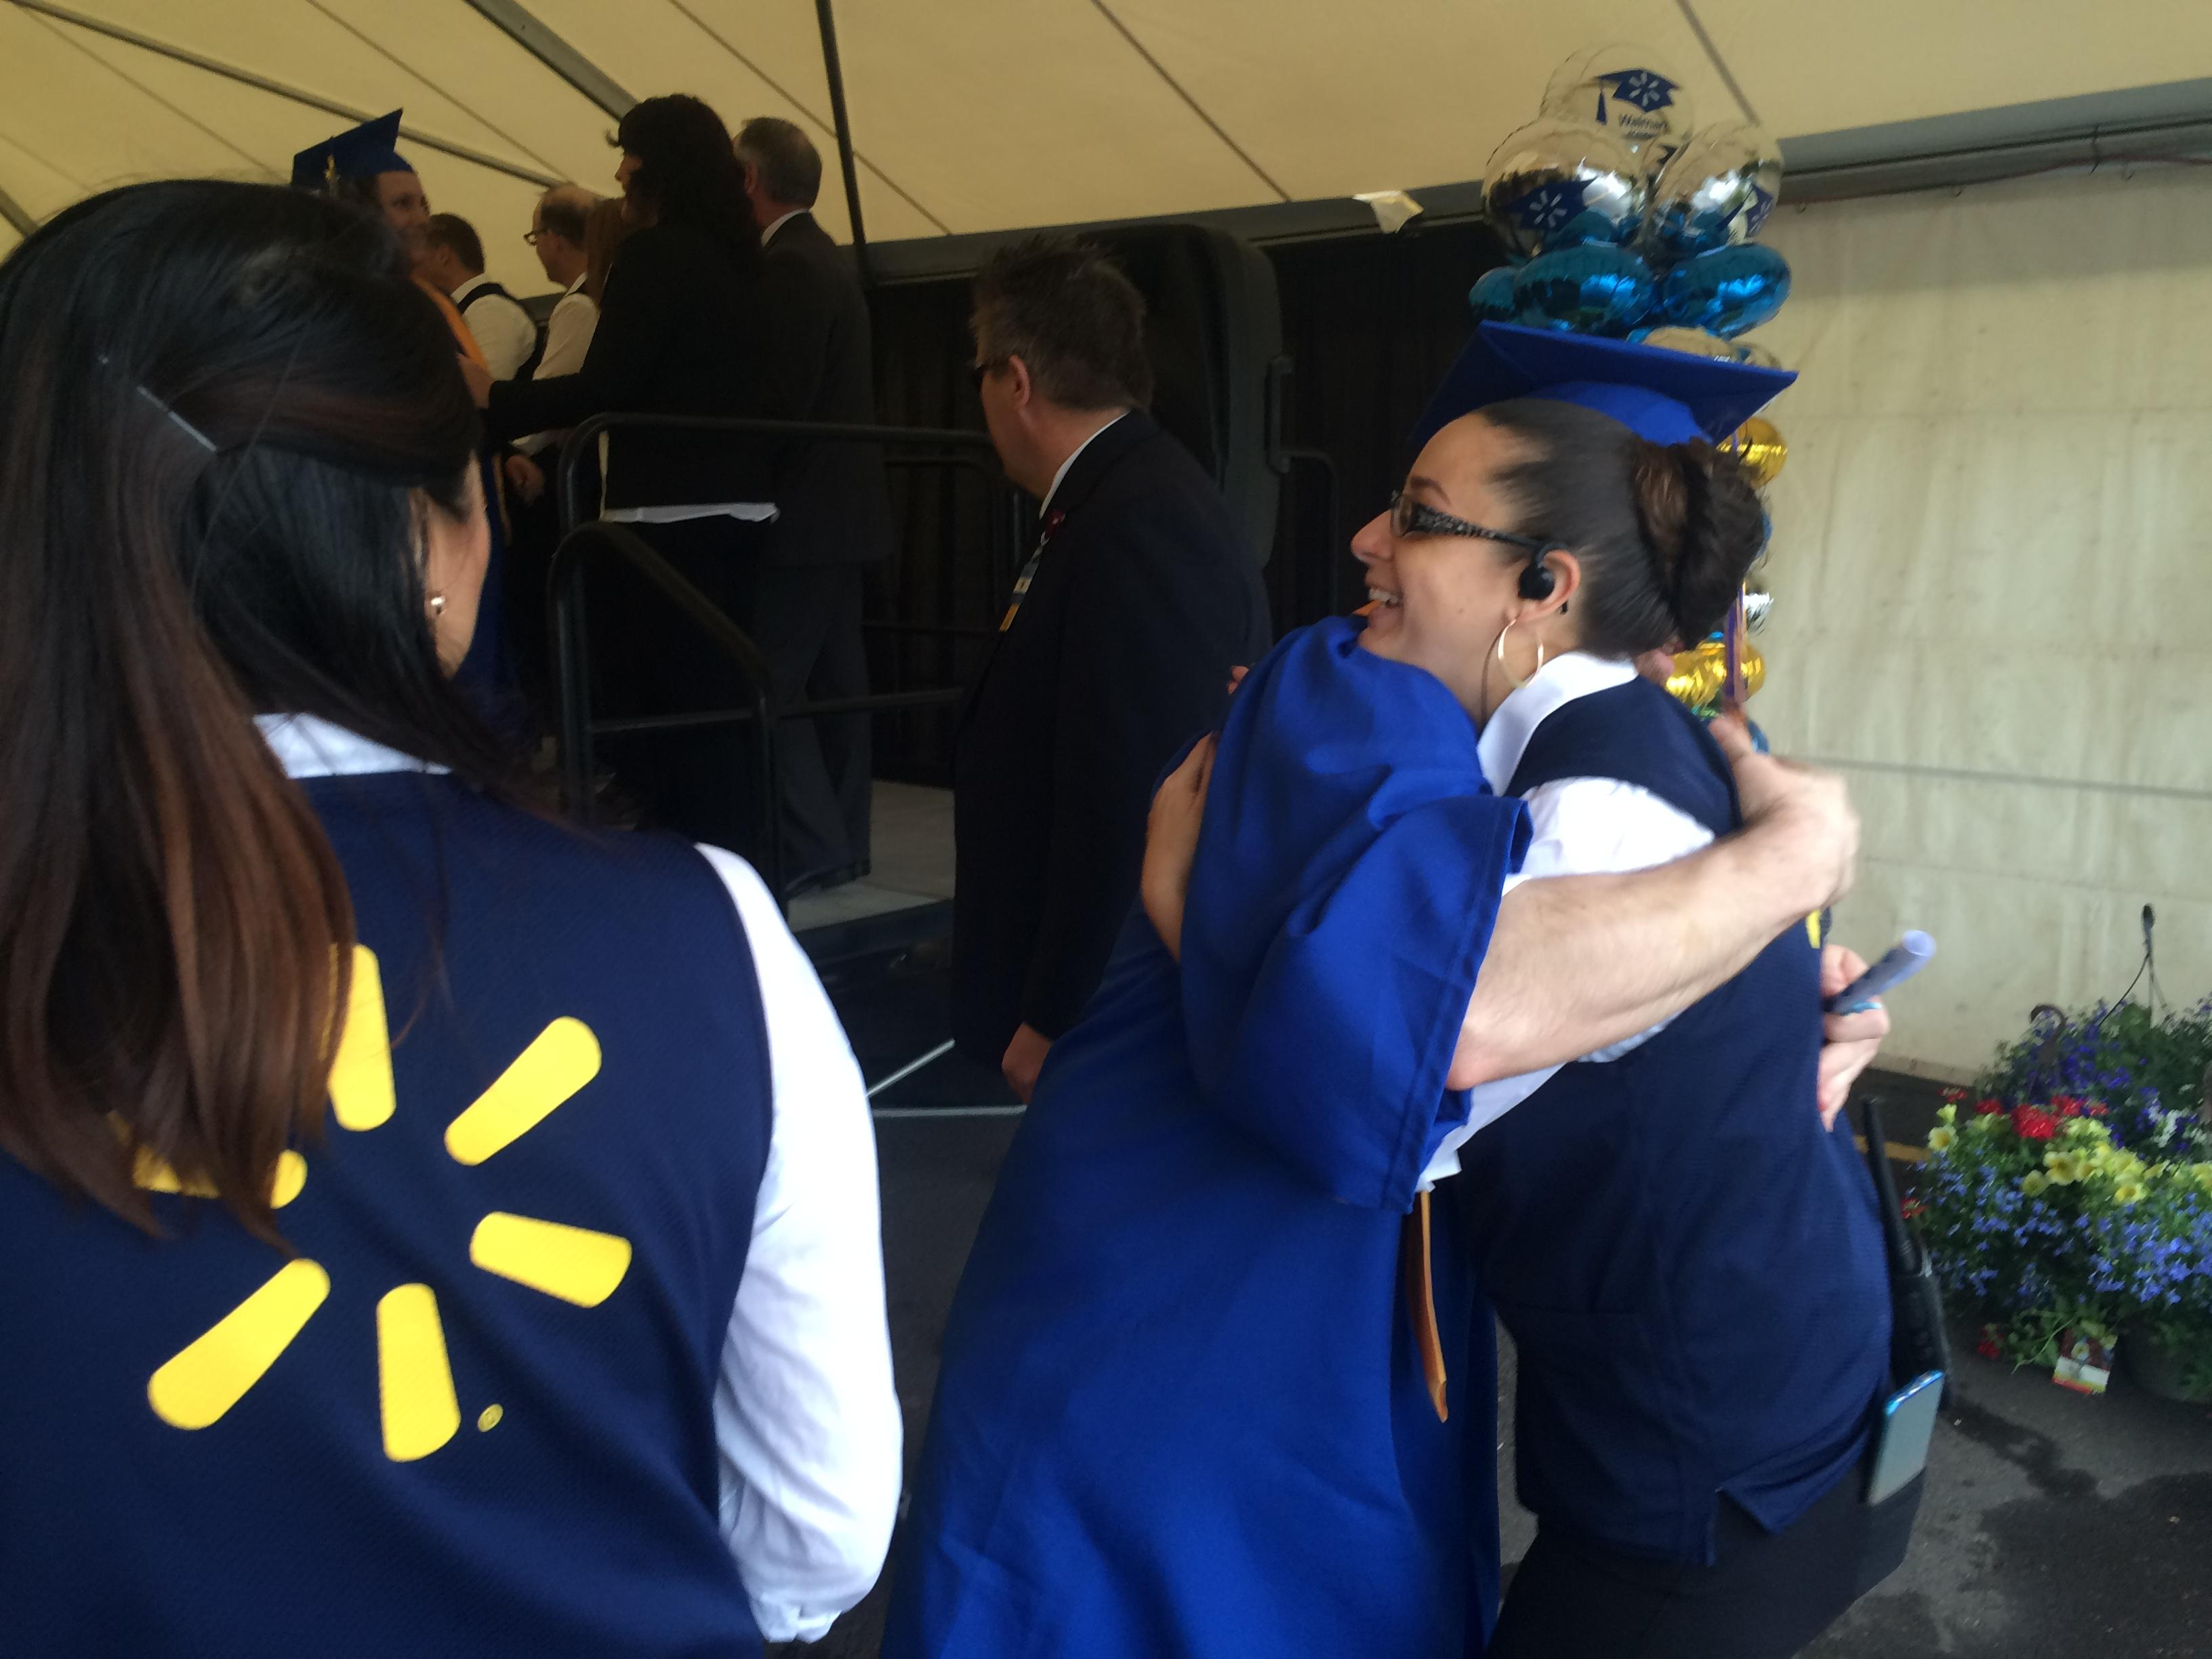 Walmart held a graduation ceremony on May 11, 2017, to recognize the first group of graduates from the new Training Academy that will serve stores in the region. (SBG photo)